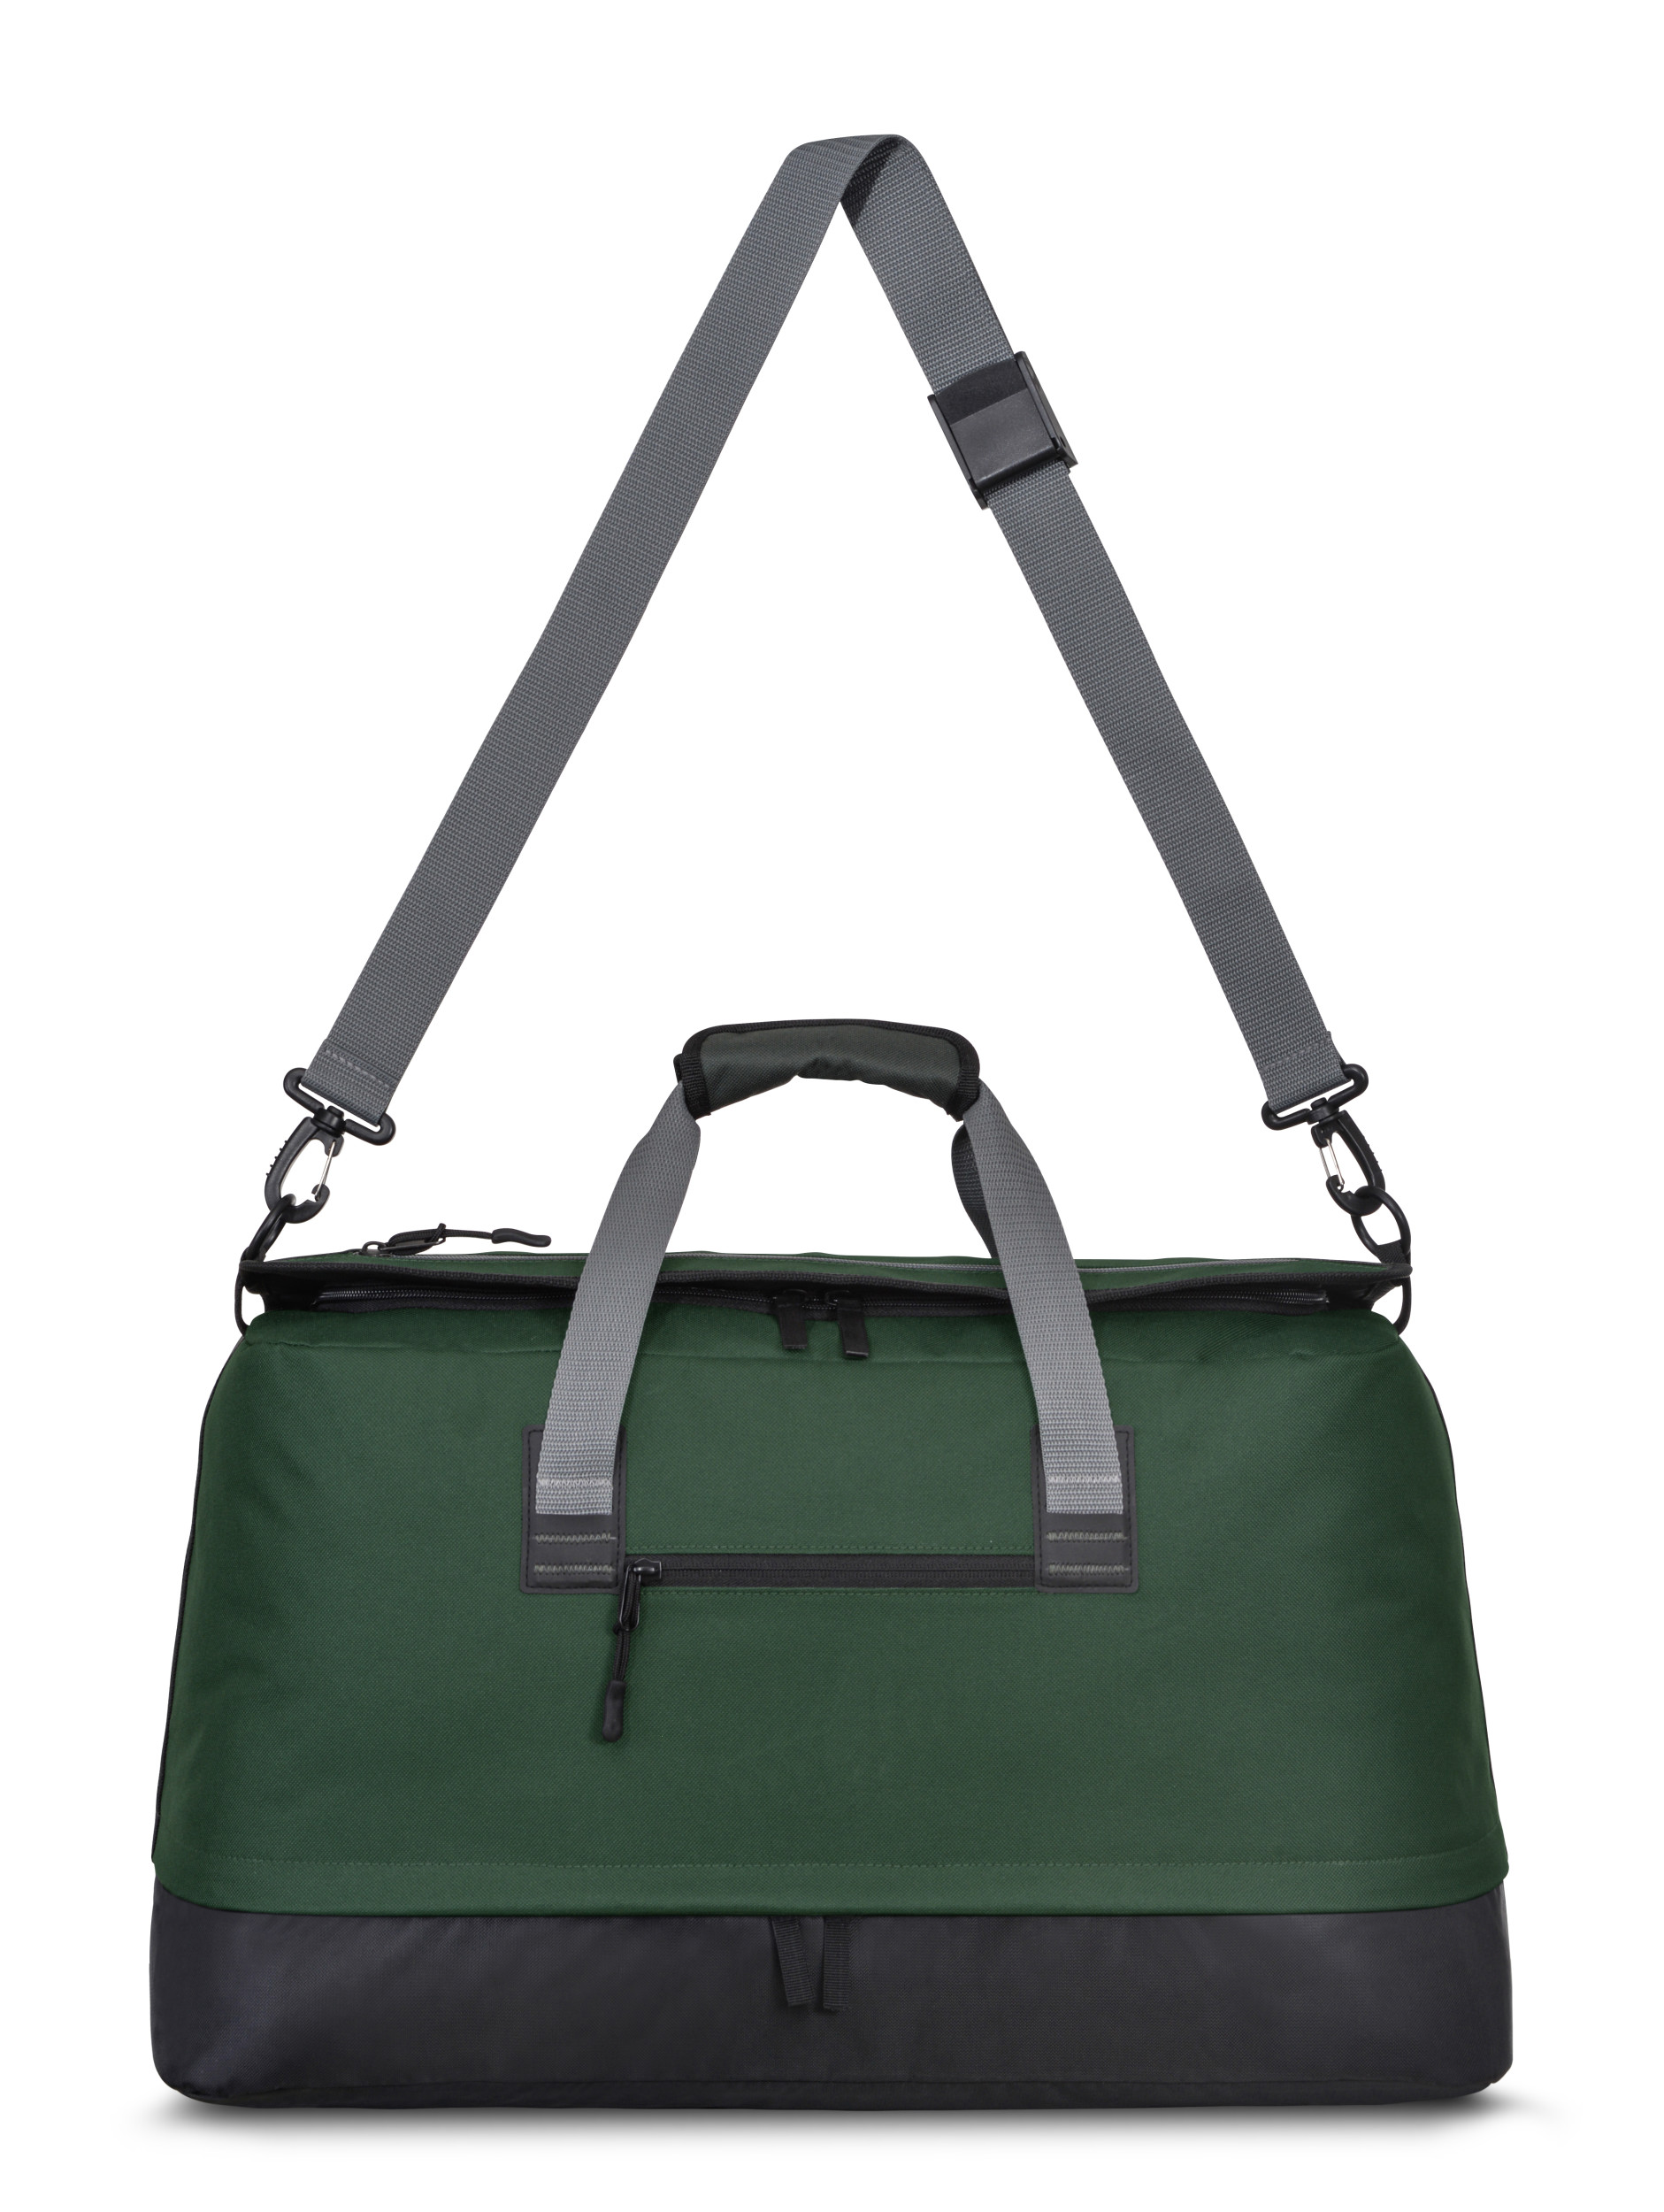 Gemline 100119 - Brighton Adjustable Duffel